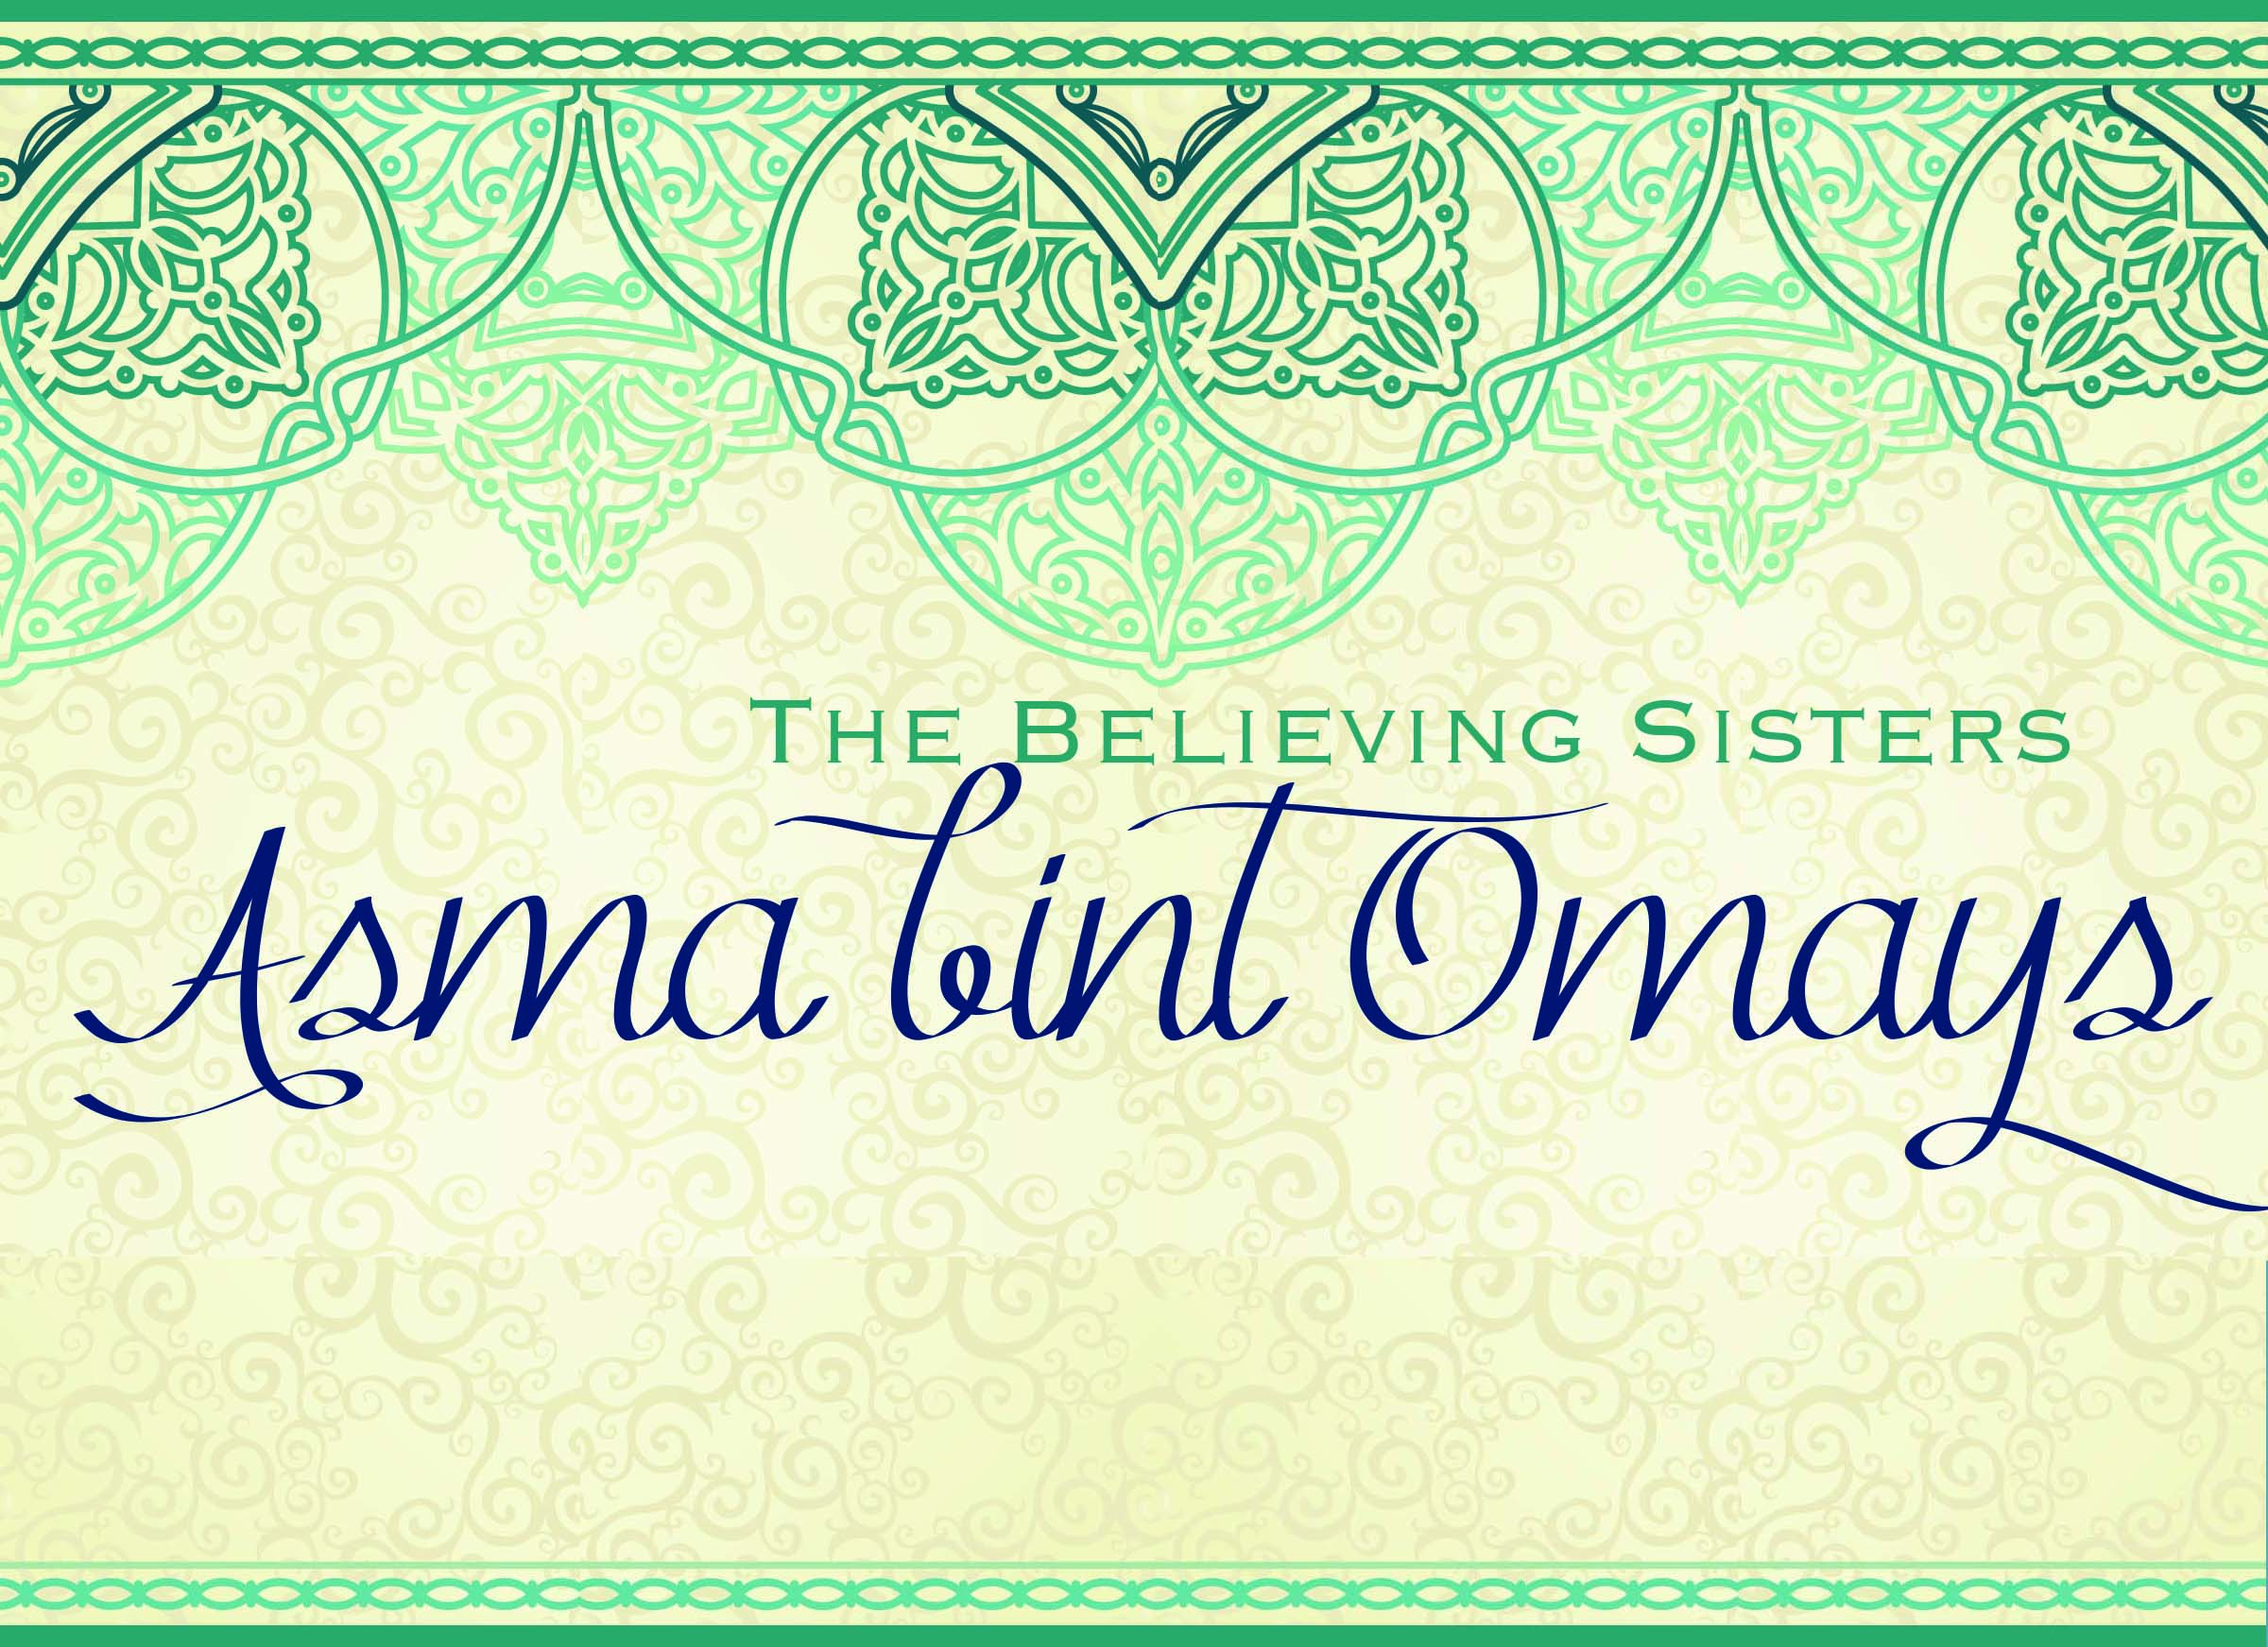 The Believing Sisters-Part 3: Asma bint Omays